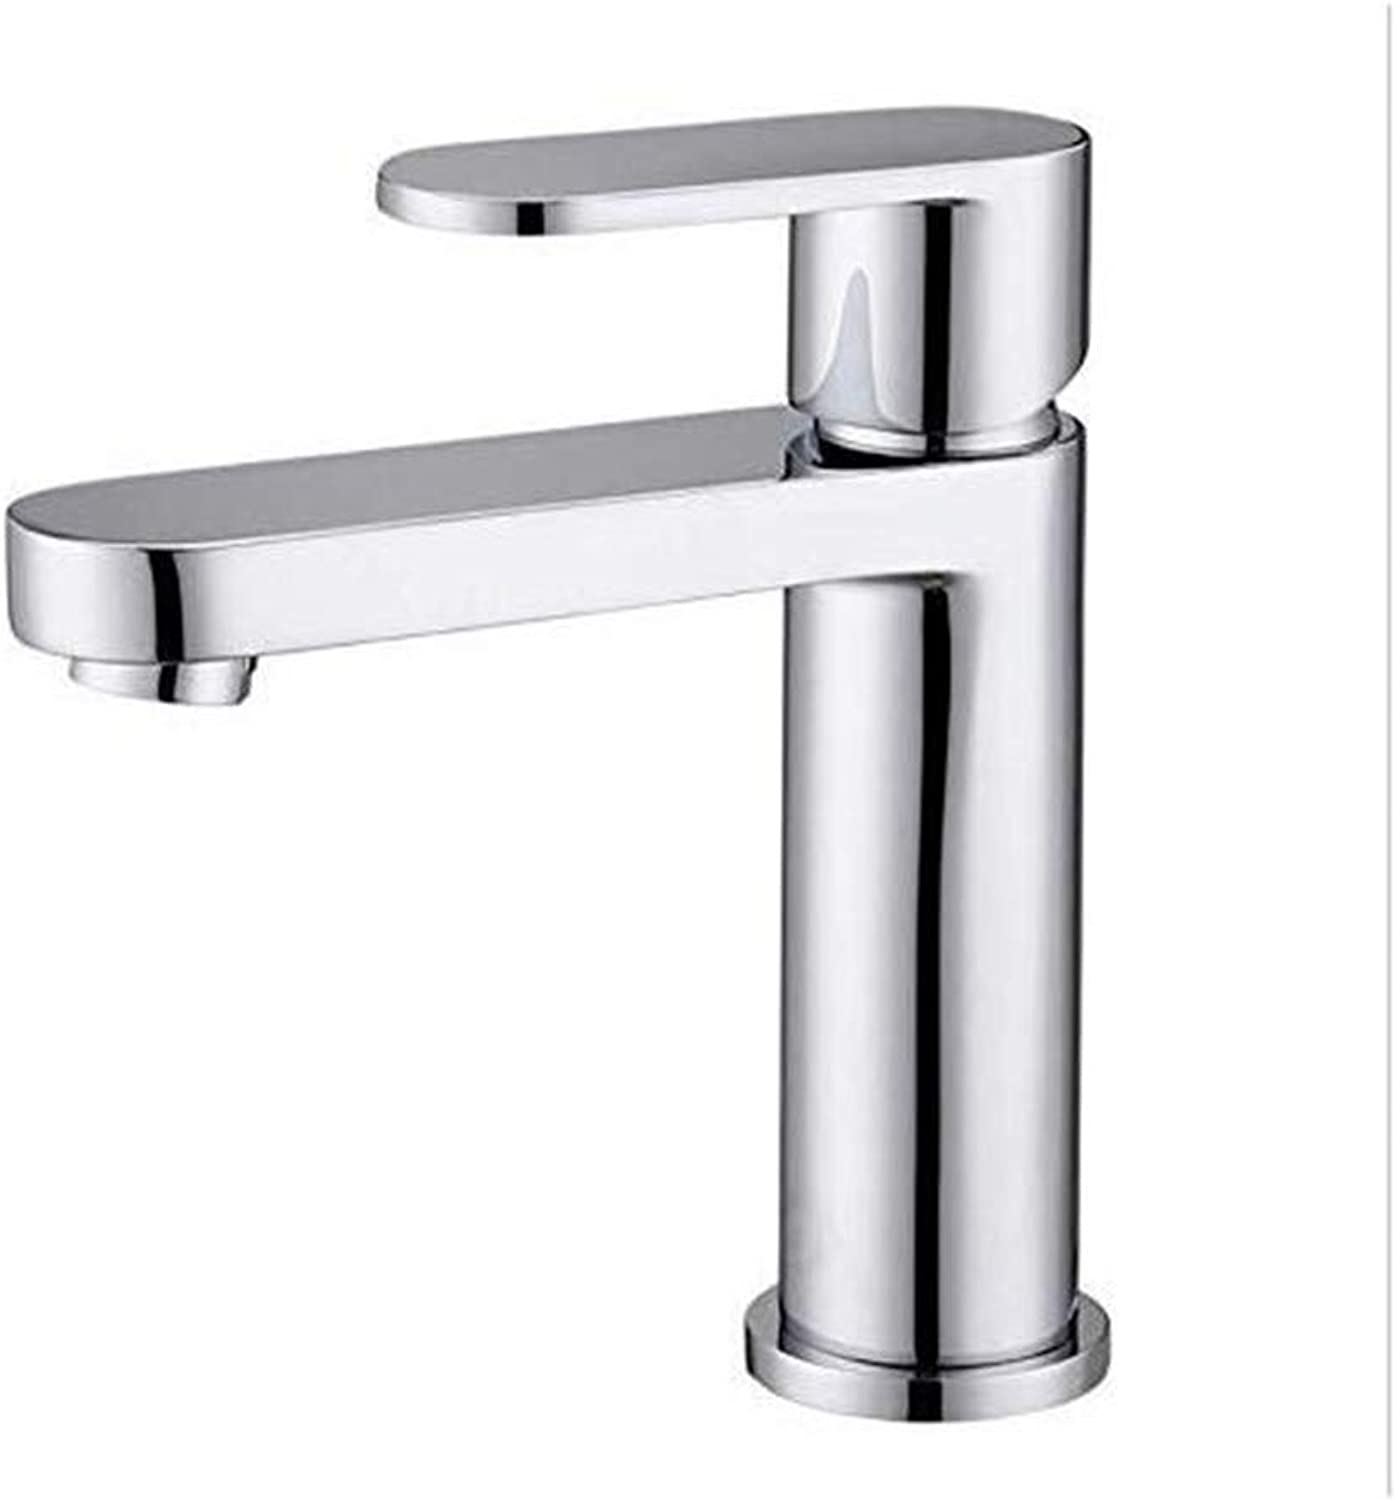 Faucet Vintage Plated Kitchen Bathroom Faucet Taps Single Hole Hot and Cold Basin Washbasin Faucet Copper Taps